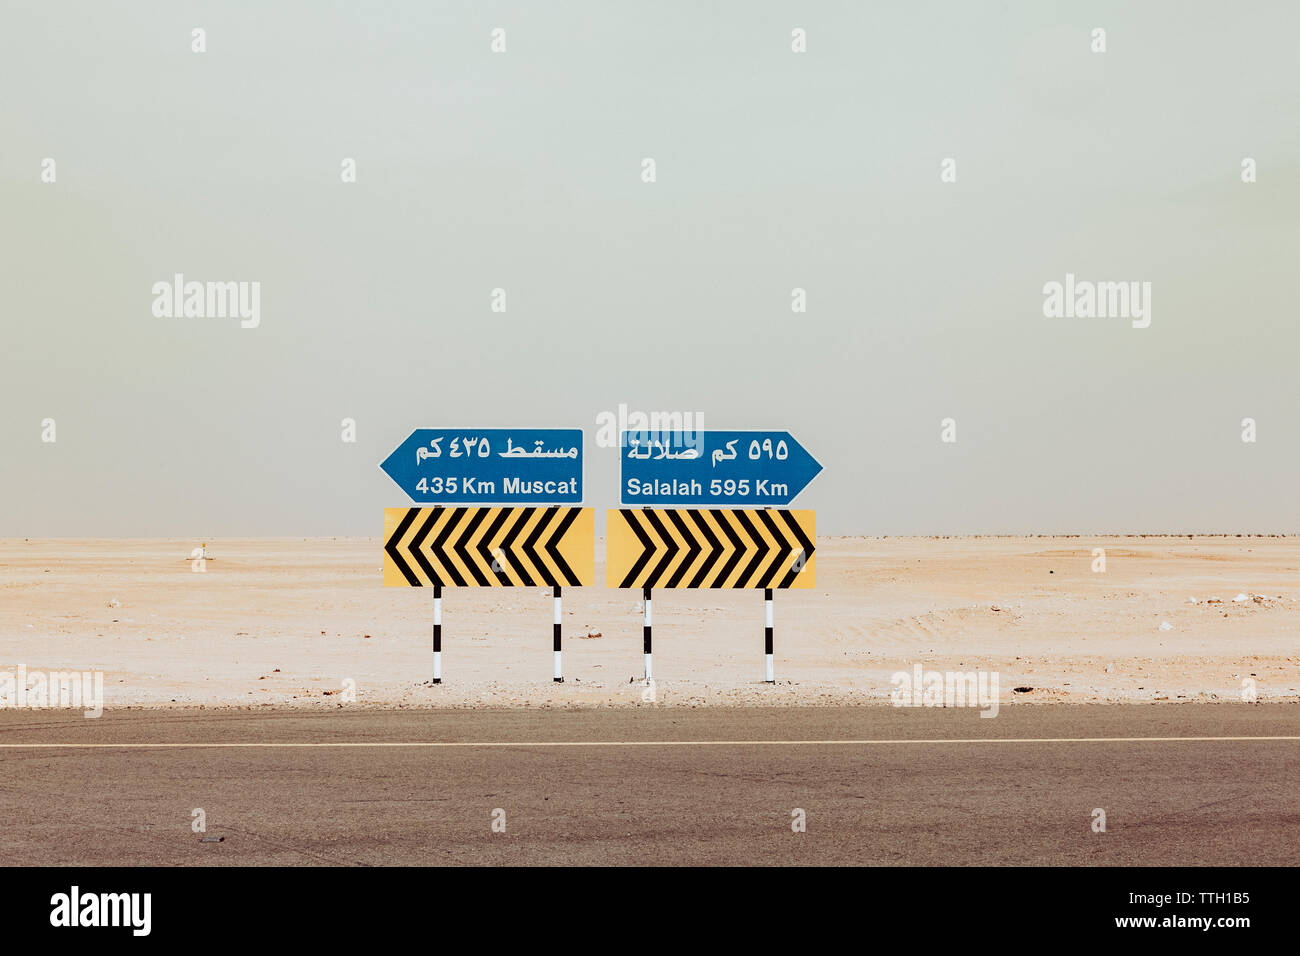 Signboards on desert against clear sky, Oman - Stock Image